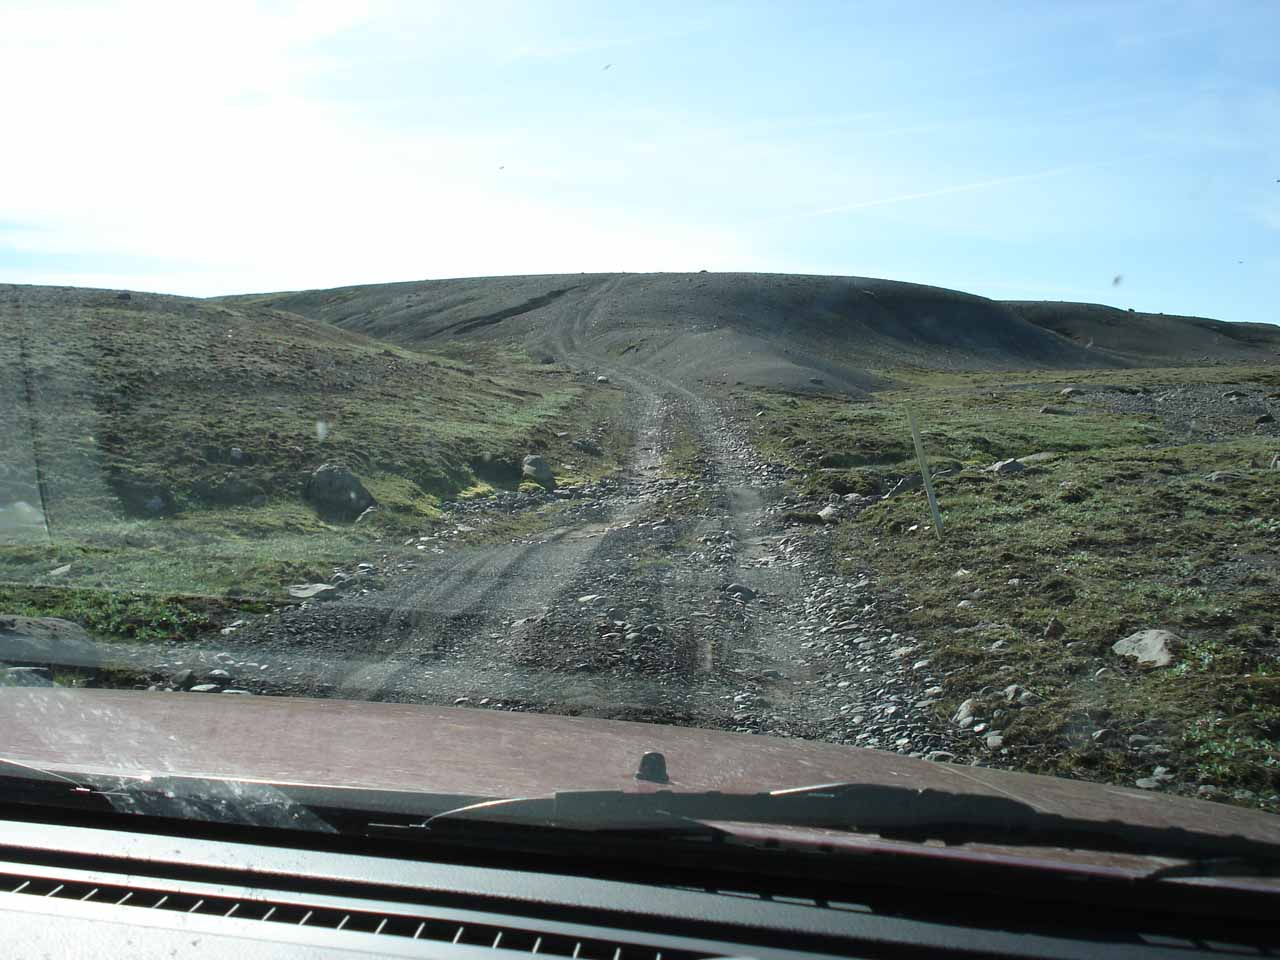 The 4wd road beyond the large boulder field